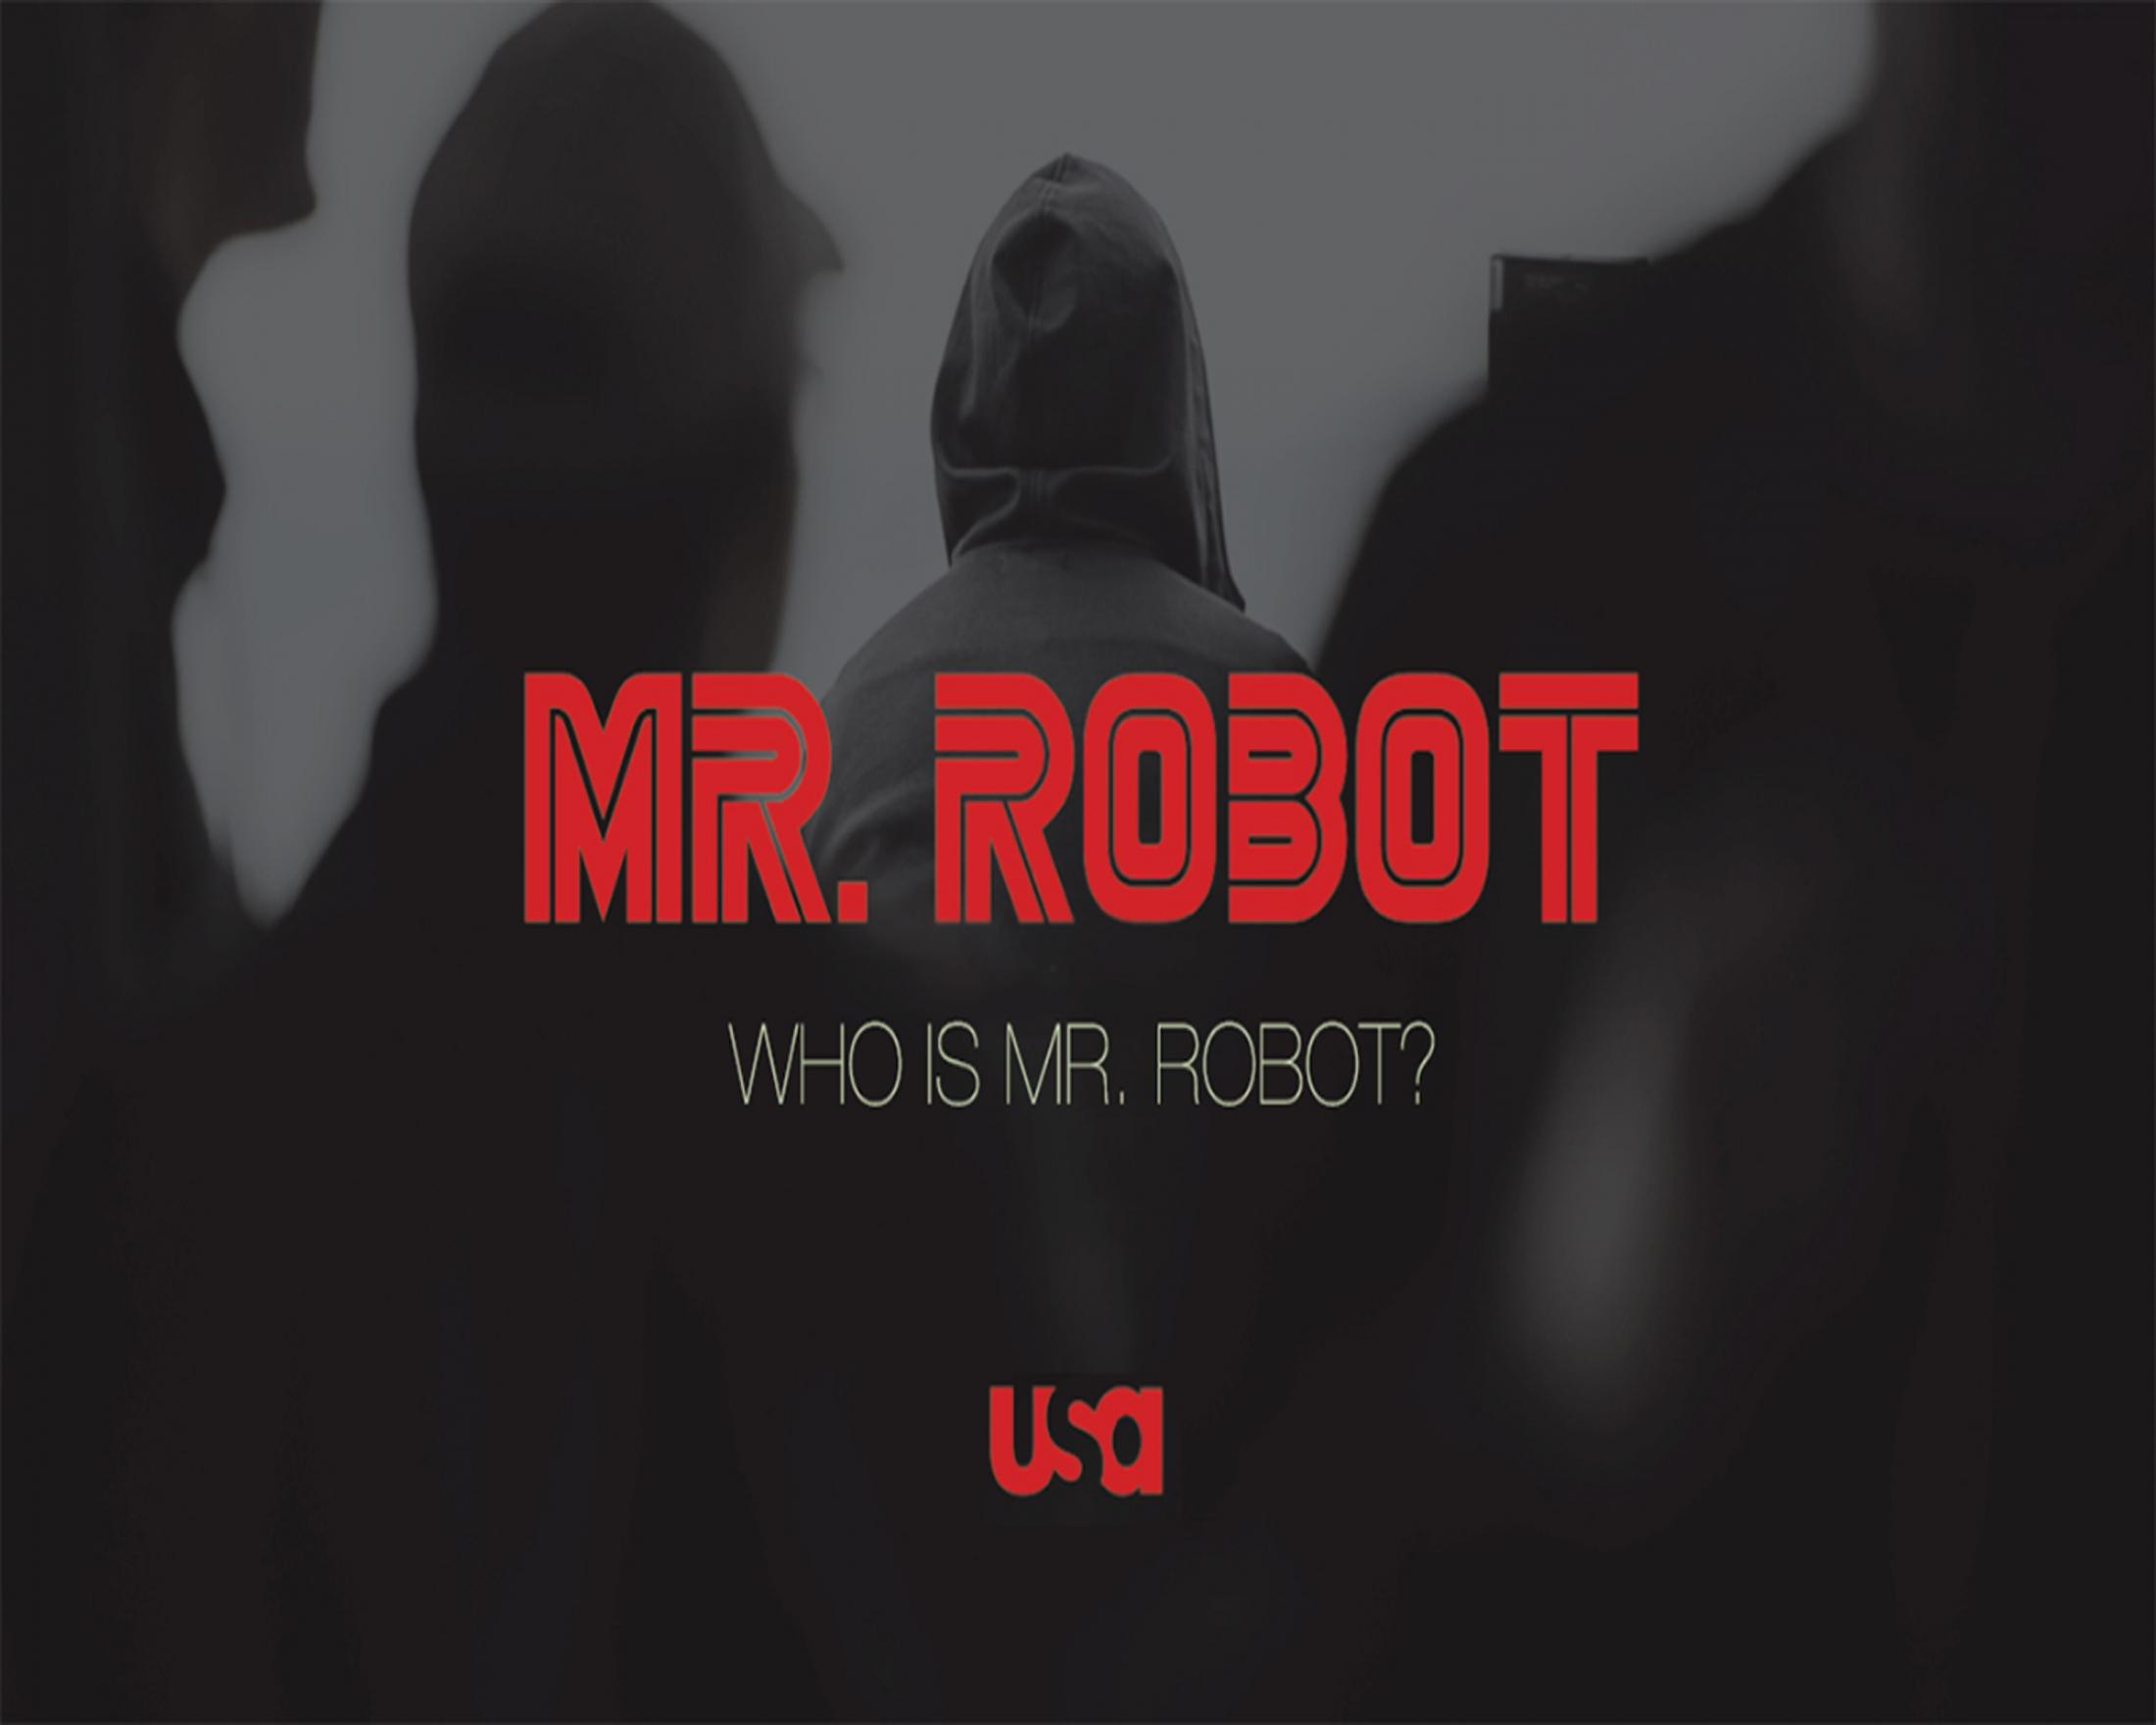 Thumbnail for Who Is Mr. Robot?